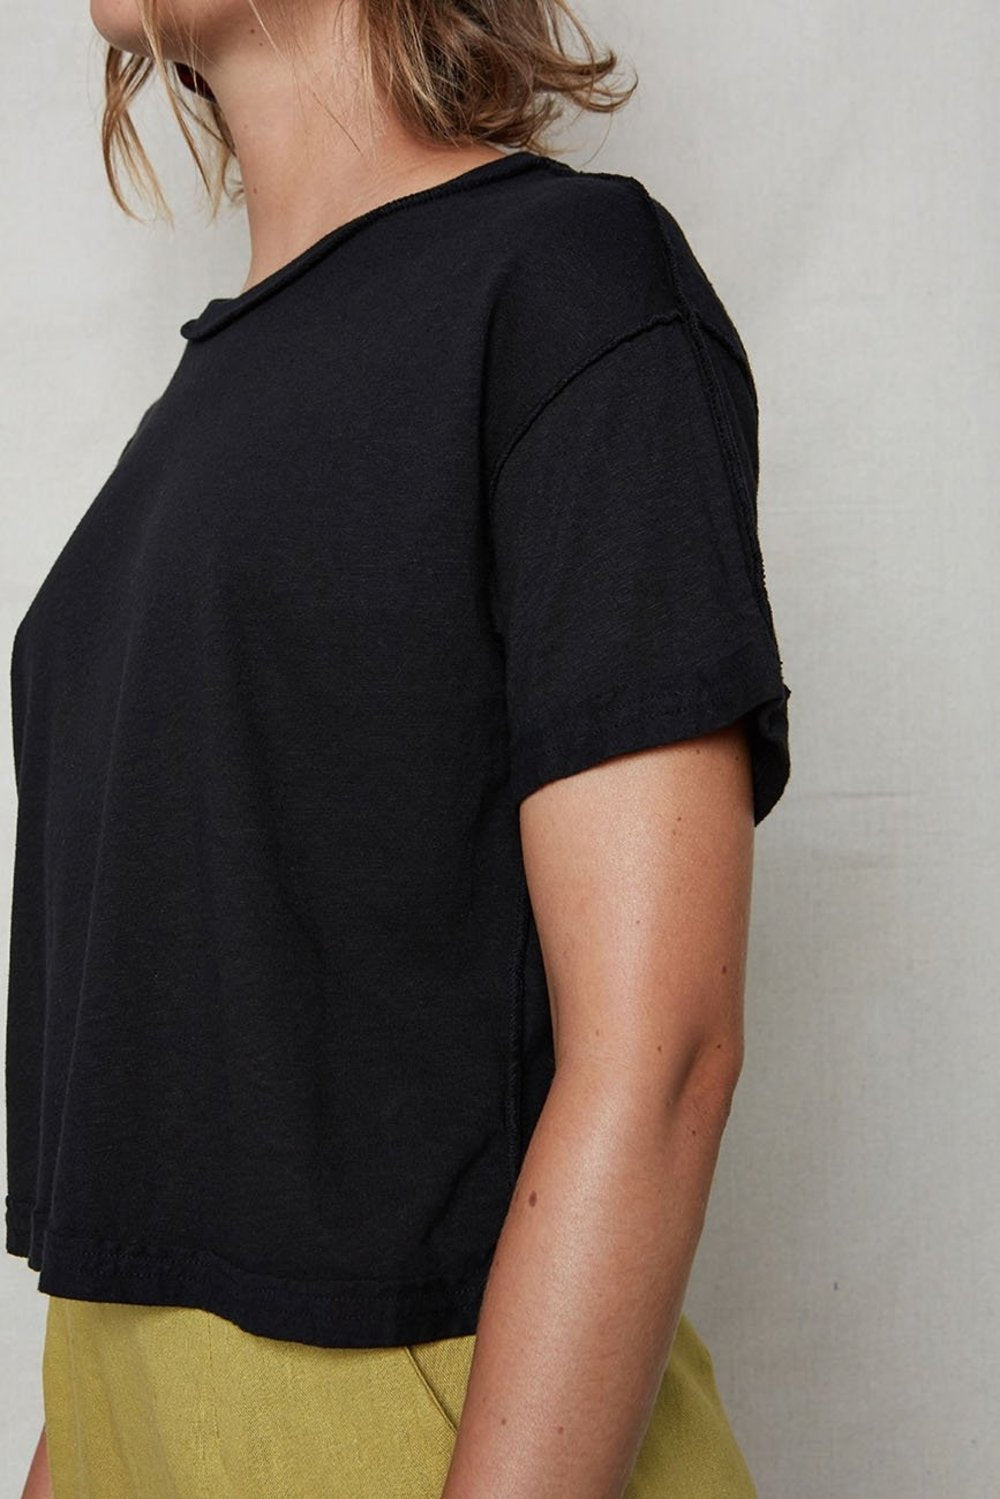 Inside Out Crop Tee Black